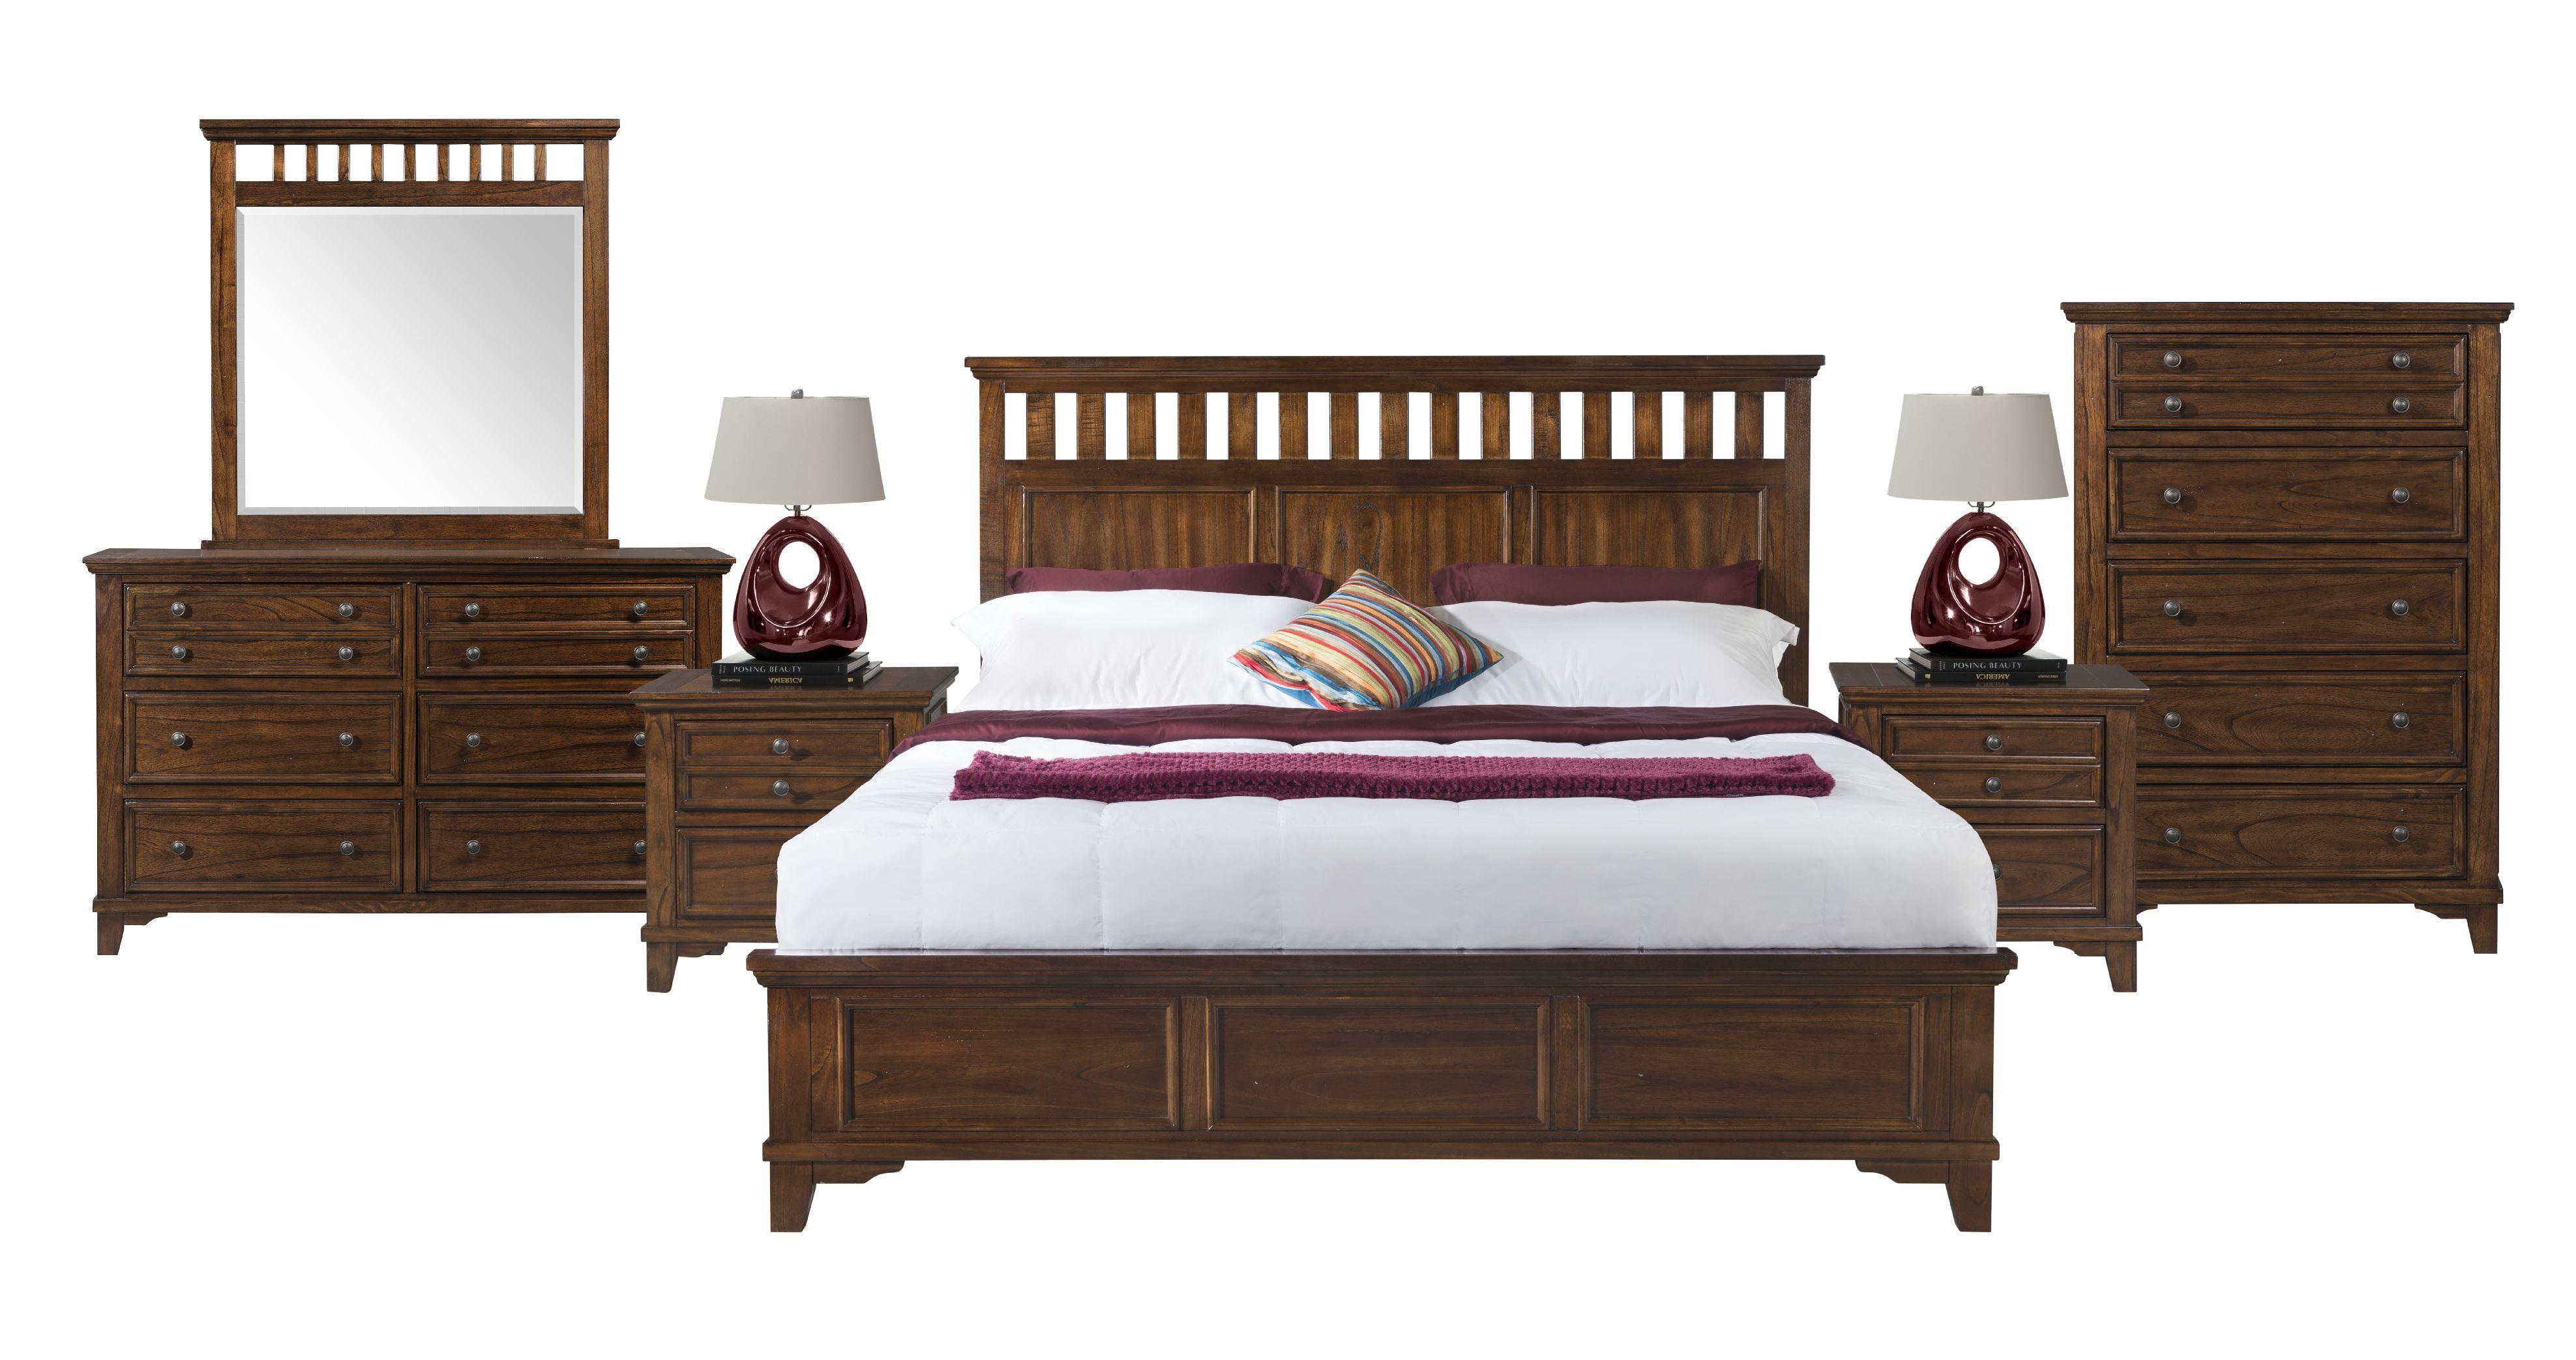 Woodlands Dresser With Eight Dovetail Drawers And Mirror Ruby Gordon Furniture Mattresses